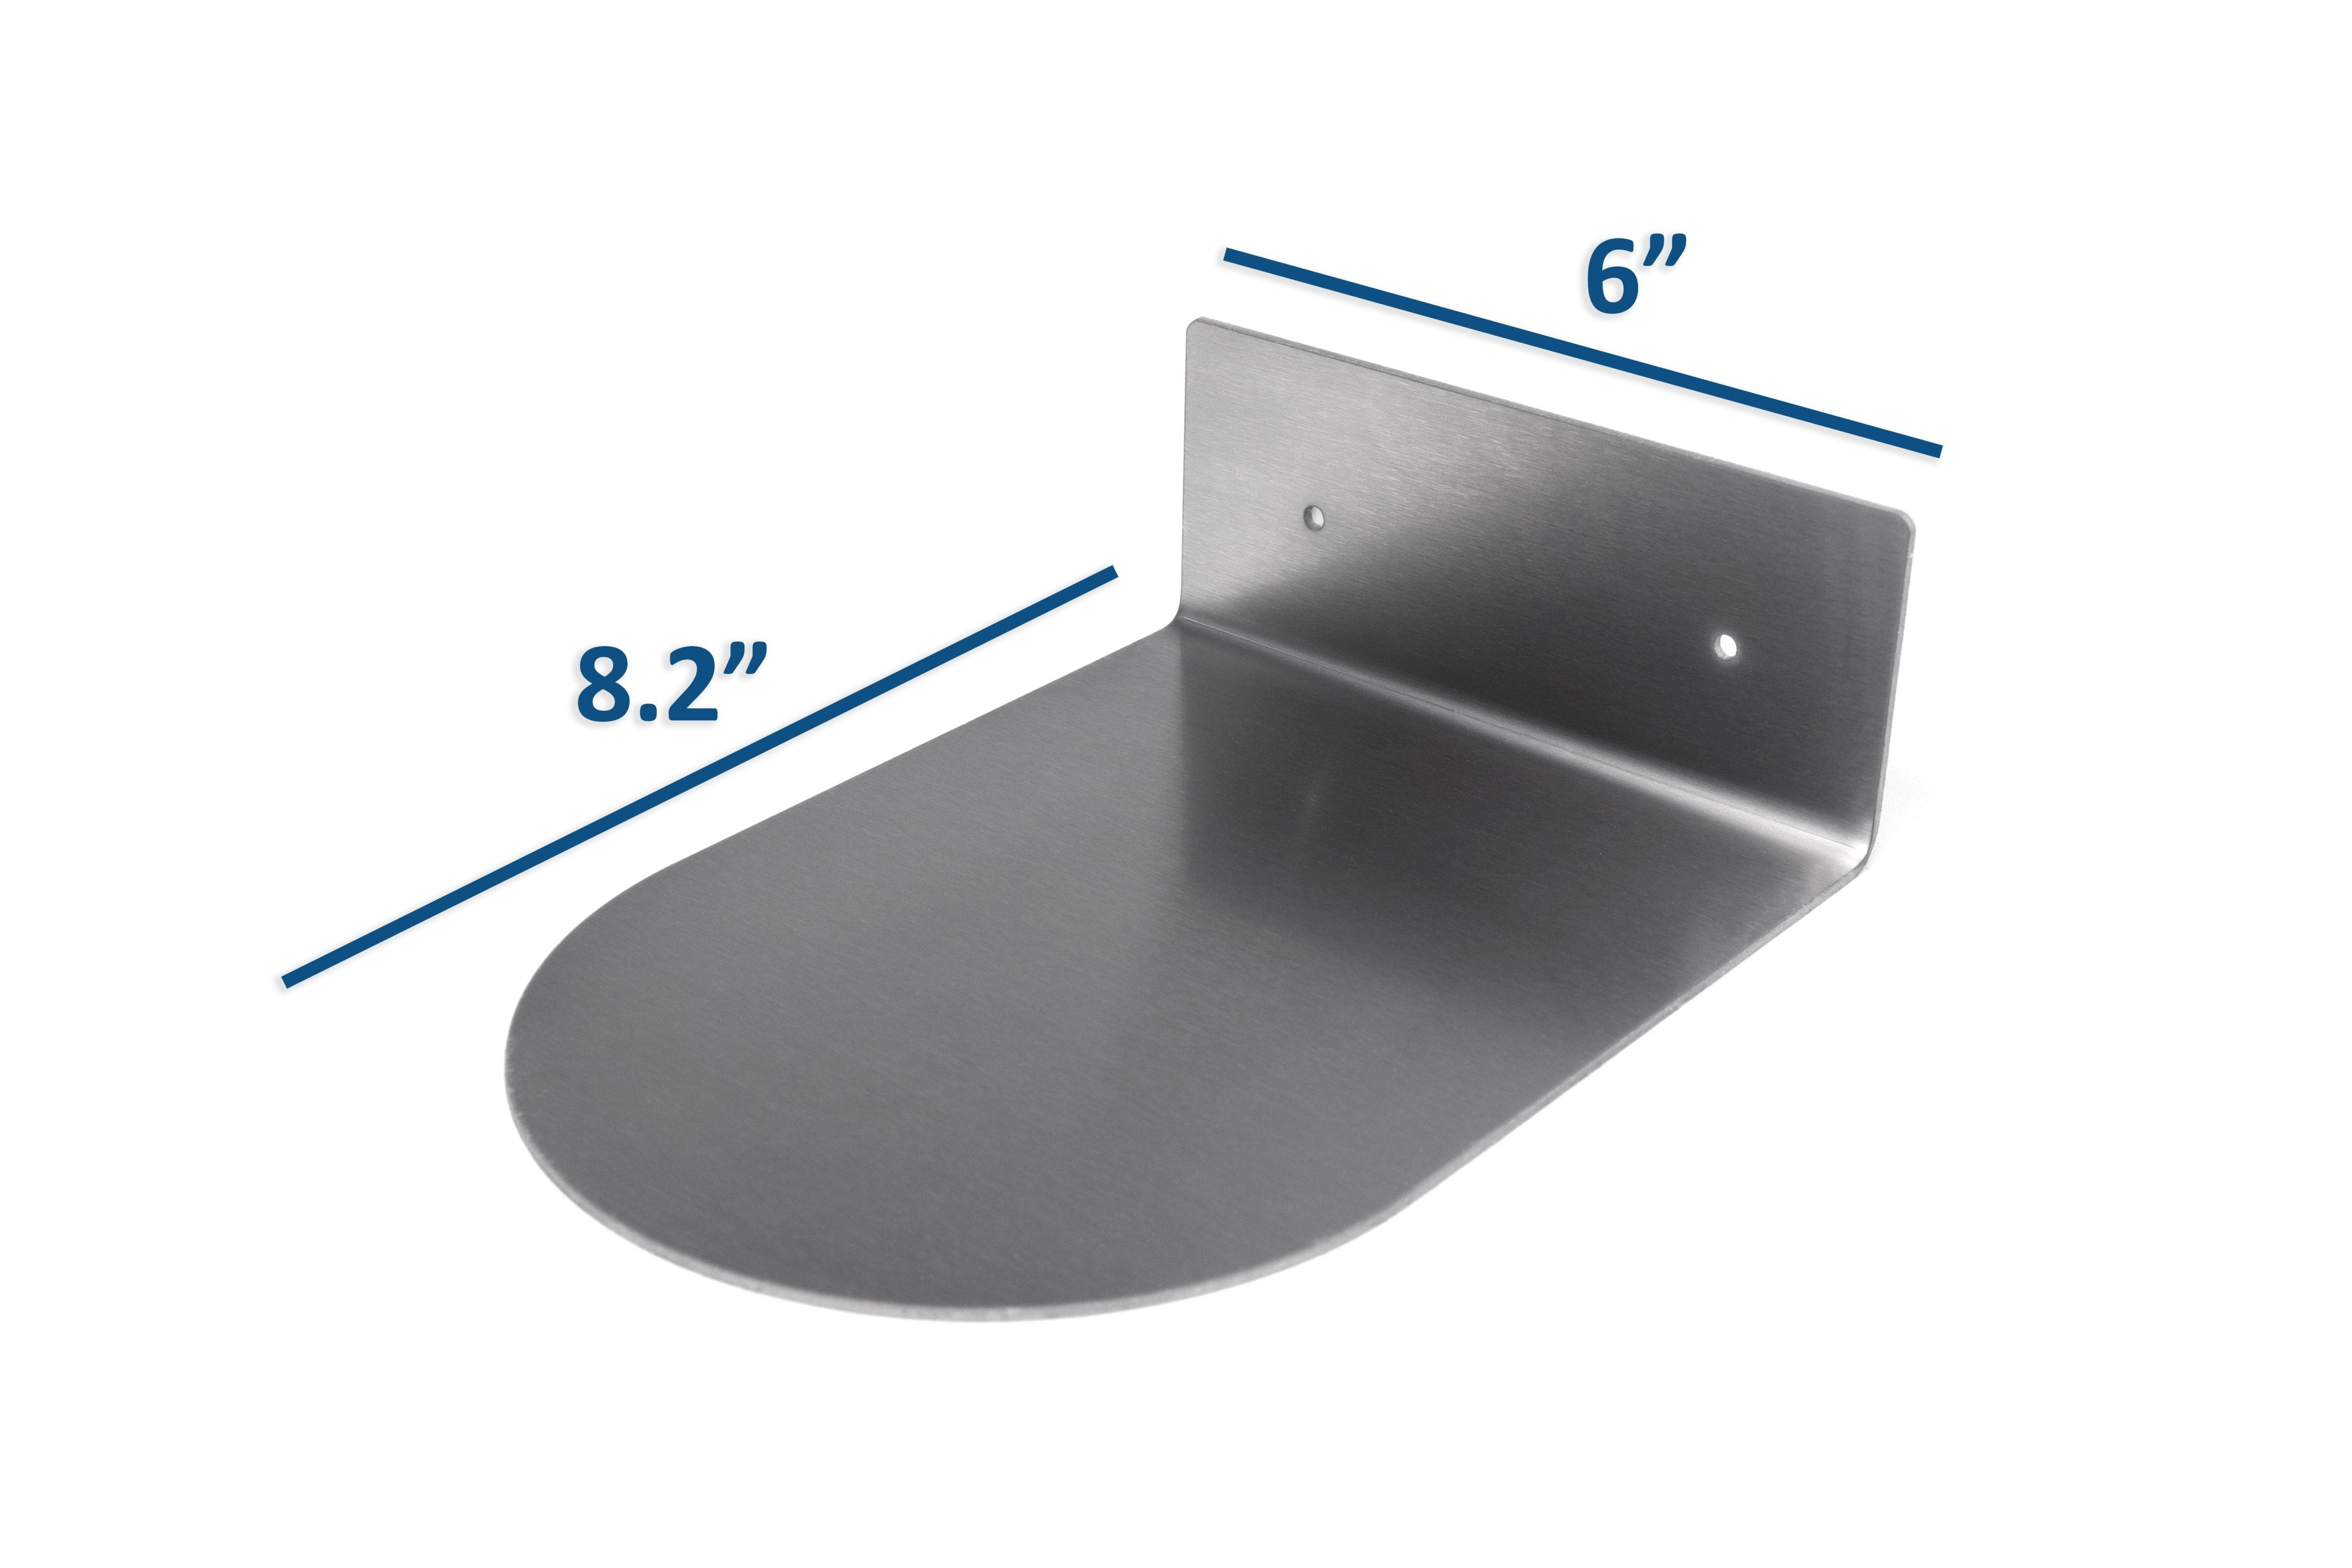 Modern Hanging Brushed Stainless Steel Floating Wall Shelf Round Decor Durable Polished Solid Metal for Home with Mounting Hardware 6 Inches Wide